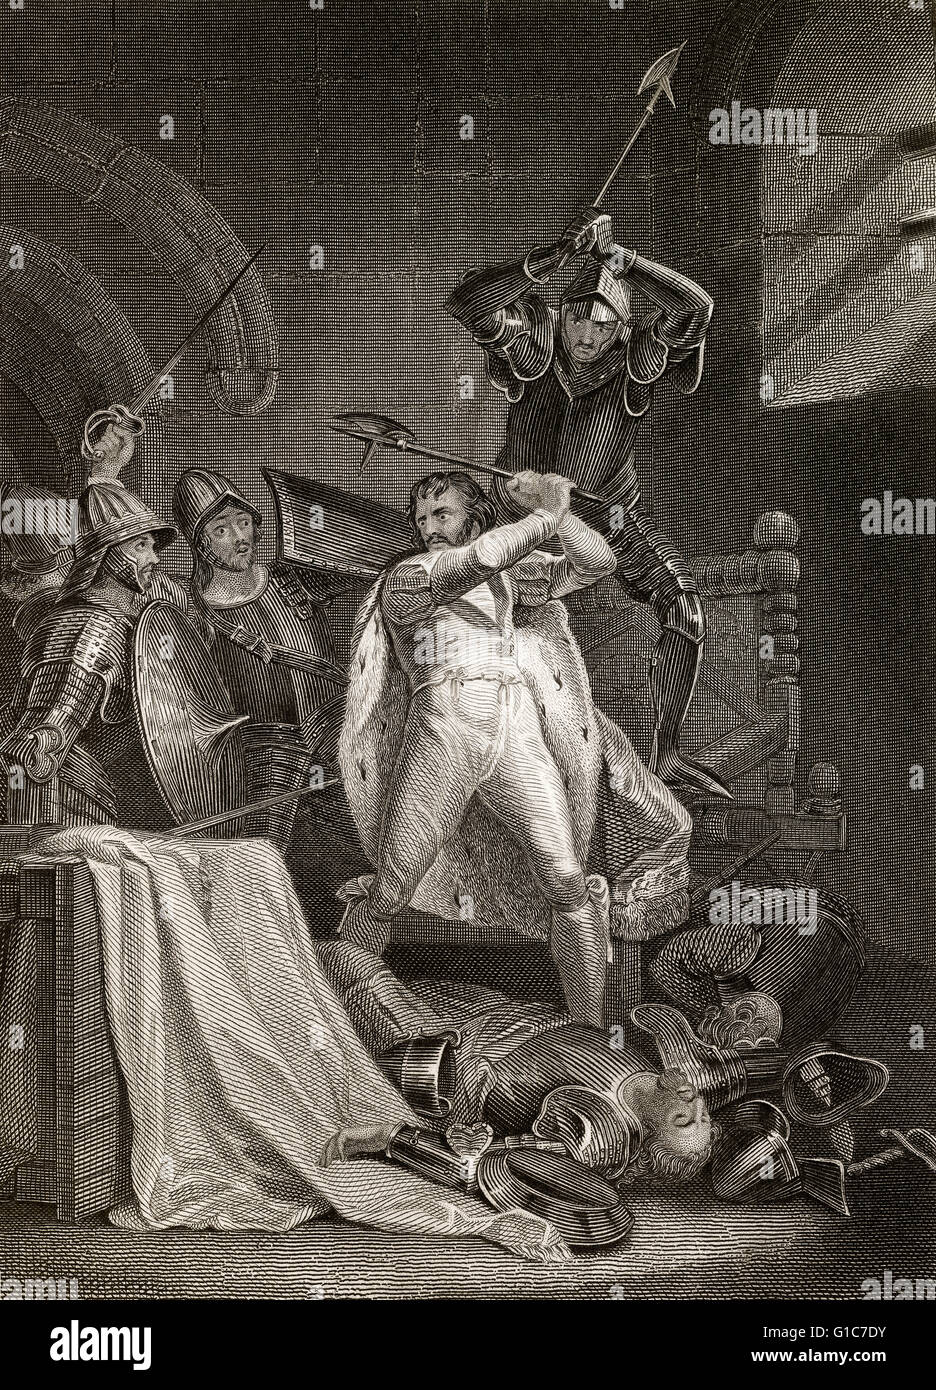 Death of Richard II, The Tragedy of King Richard the Second, a history play by William Shakespeare - Stock Image